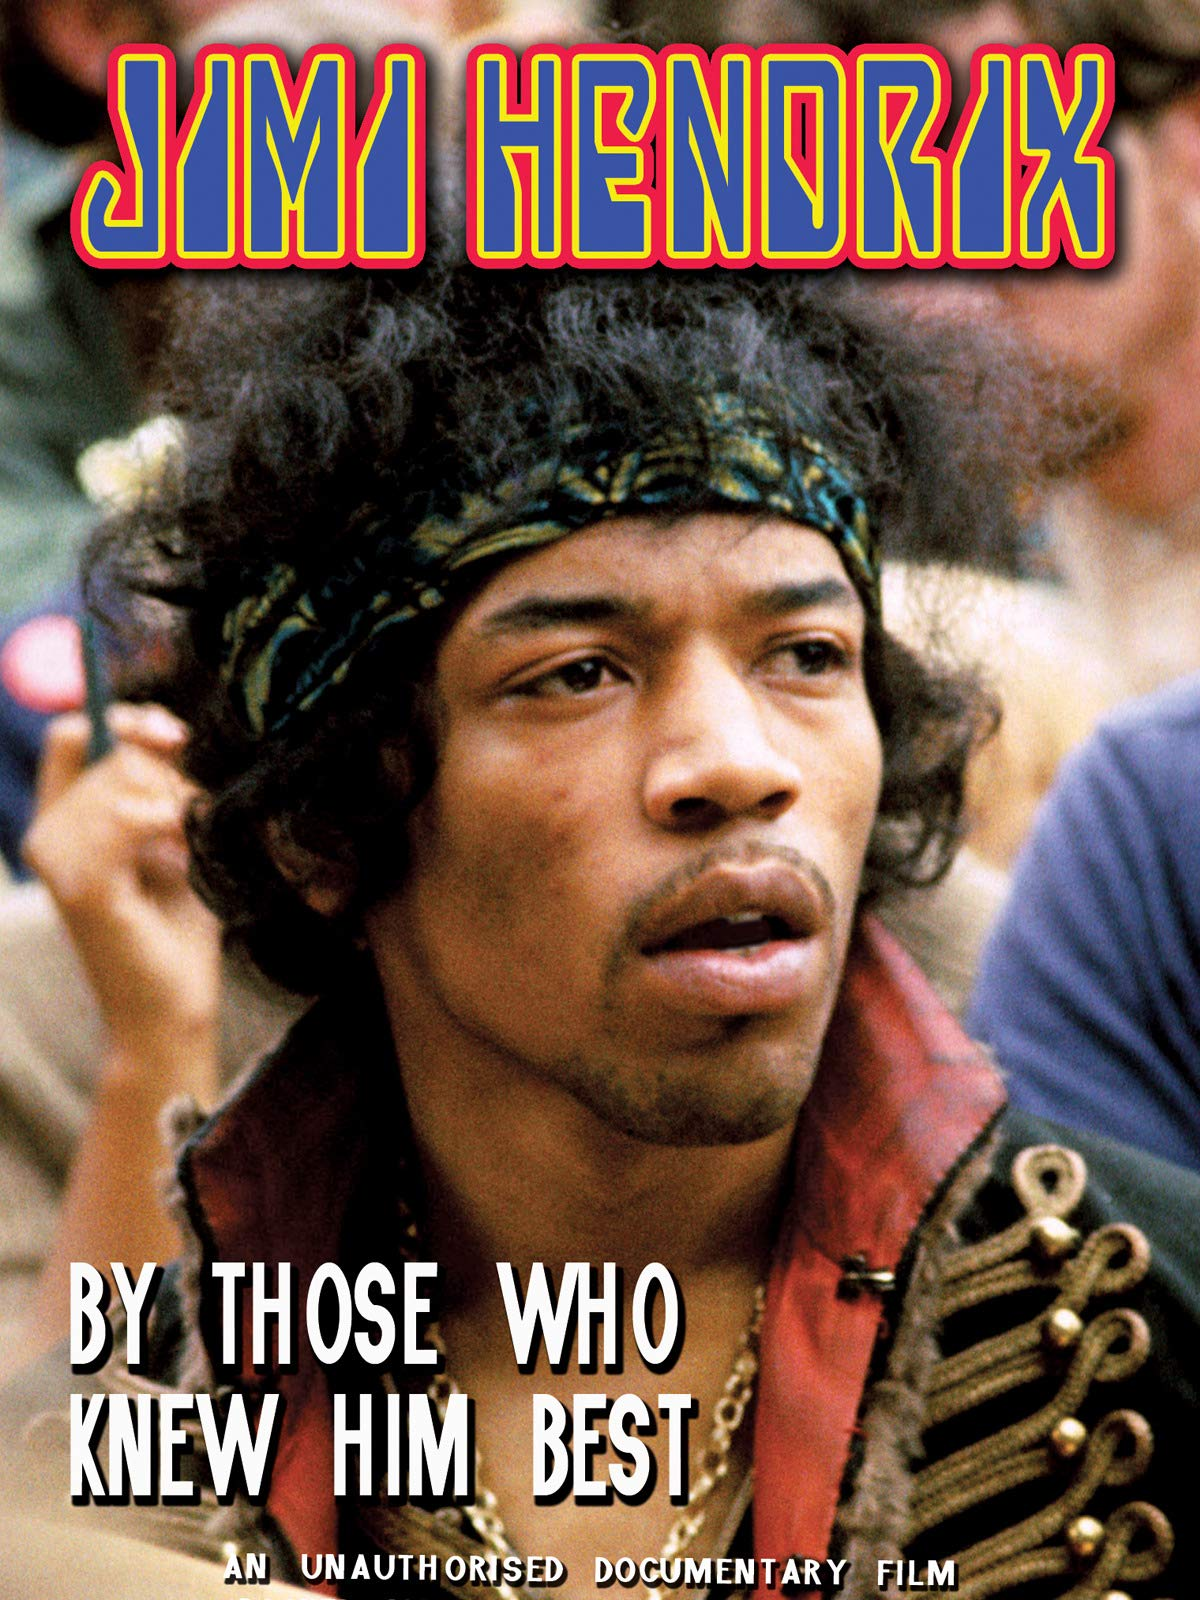 Jimi Hendrix - By Those Who Knew Him Best Unauthorized on Amazon Prime Instant Video UK